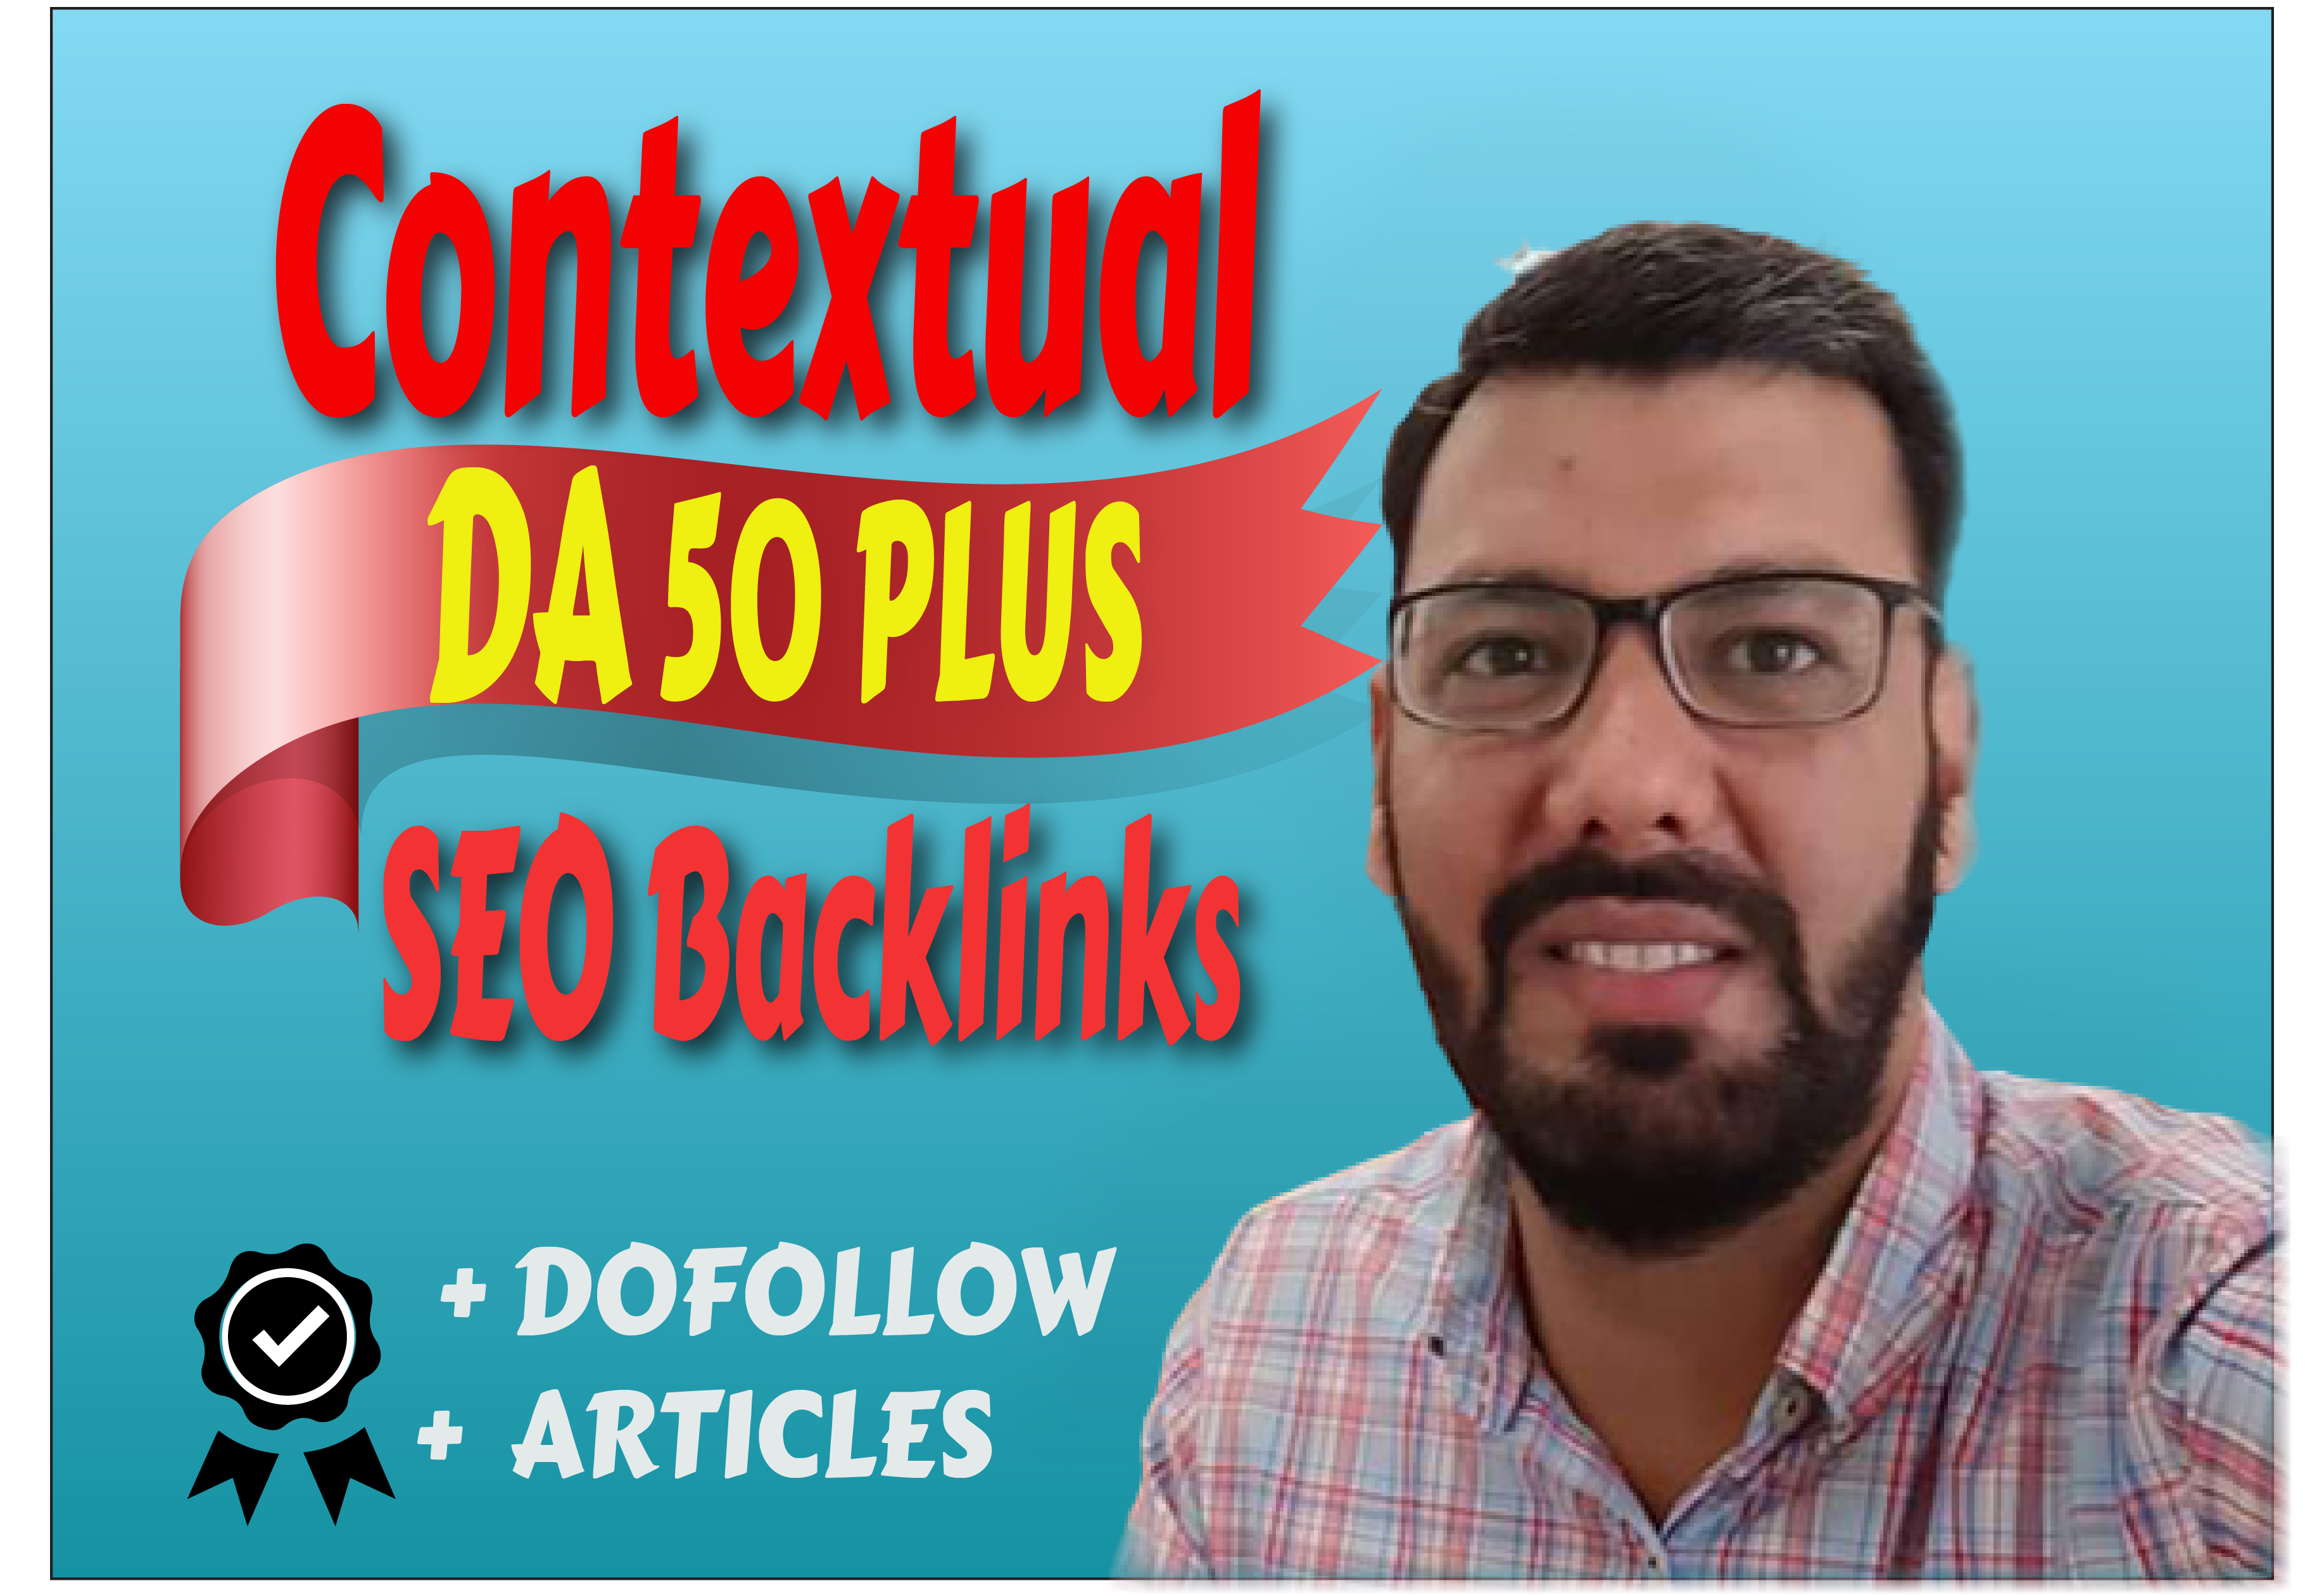 I will build ultra SEO contextual backlinks DA50 plus